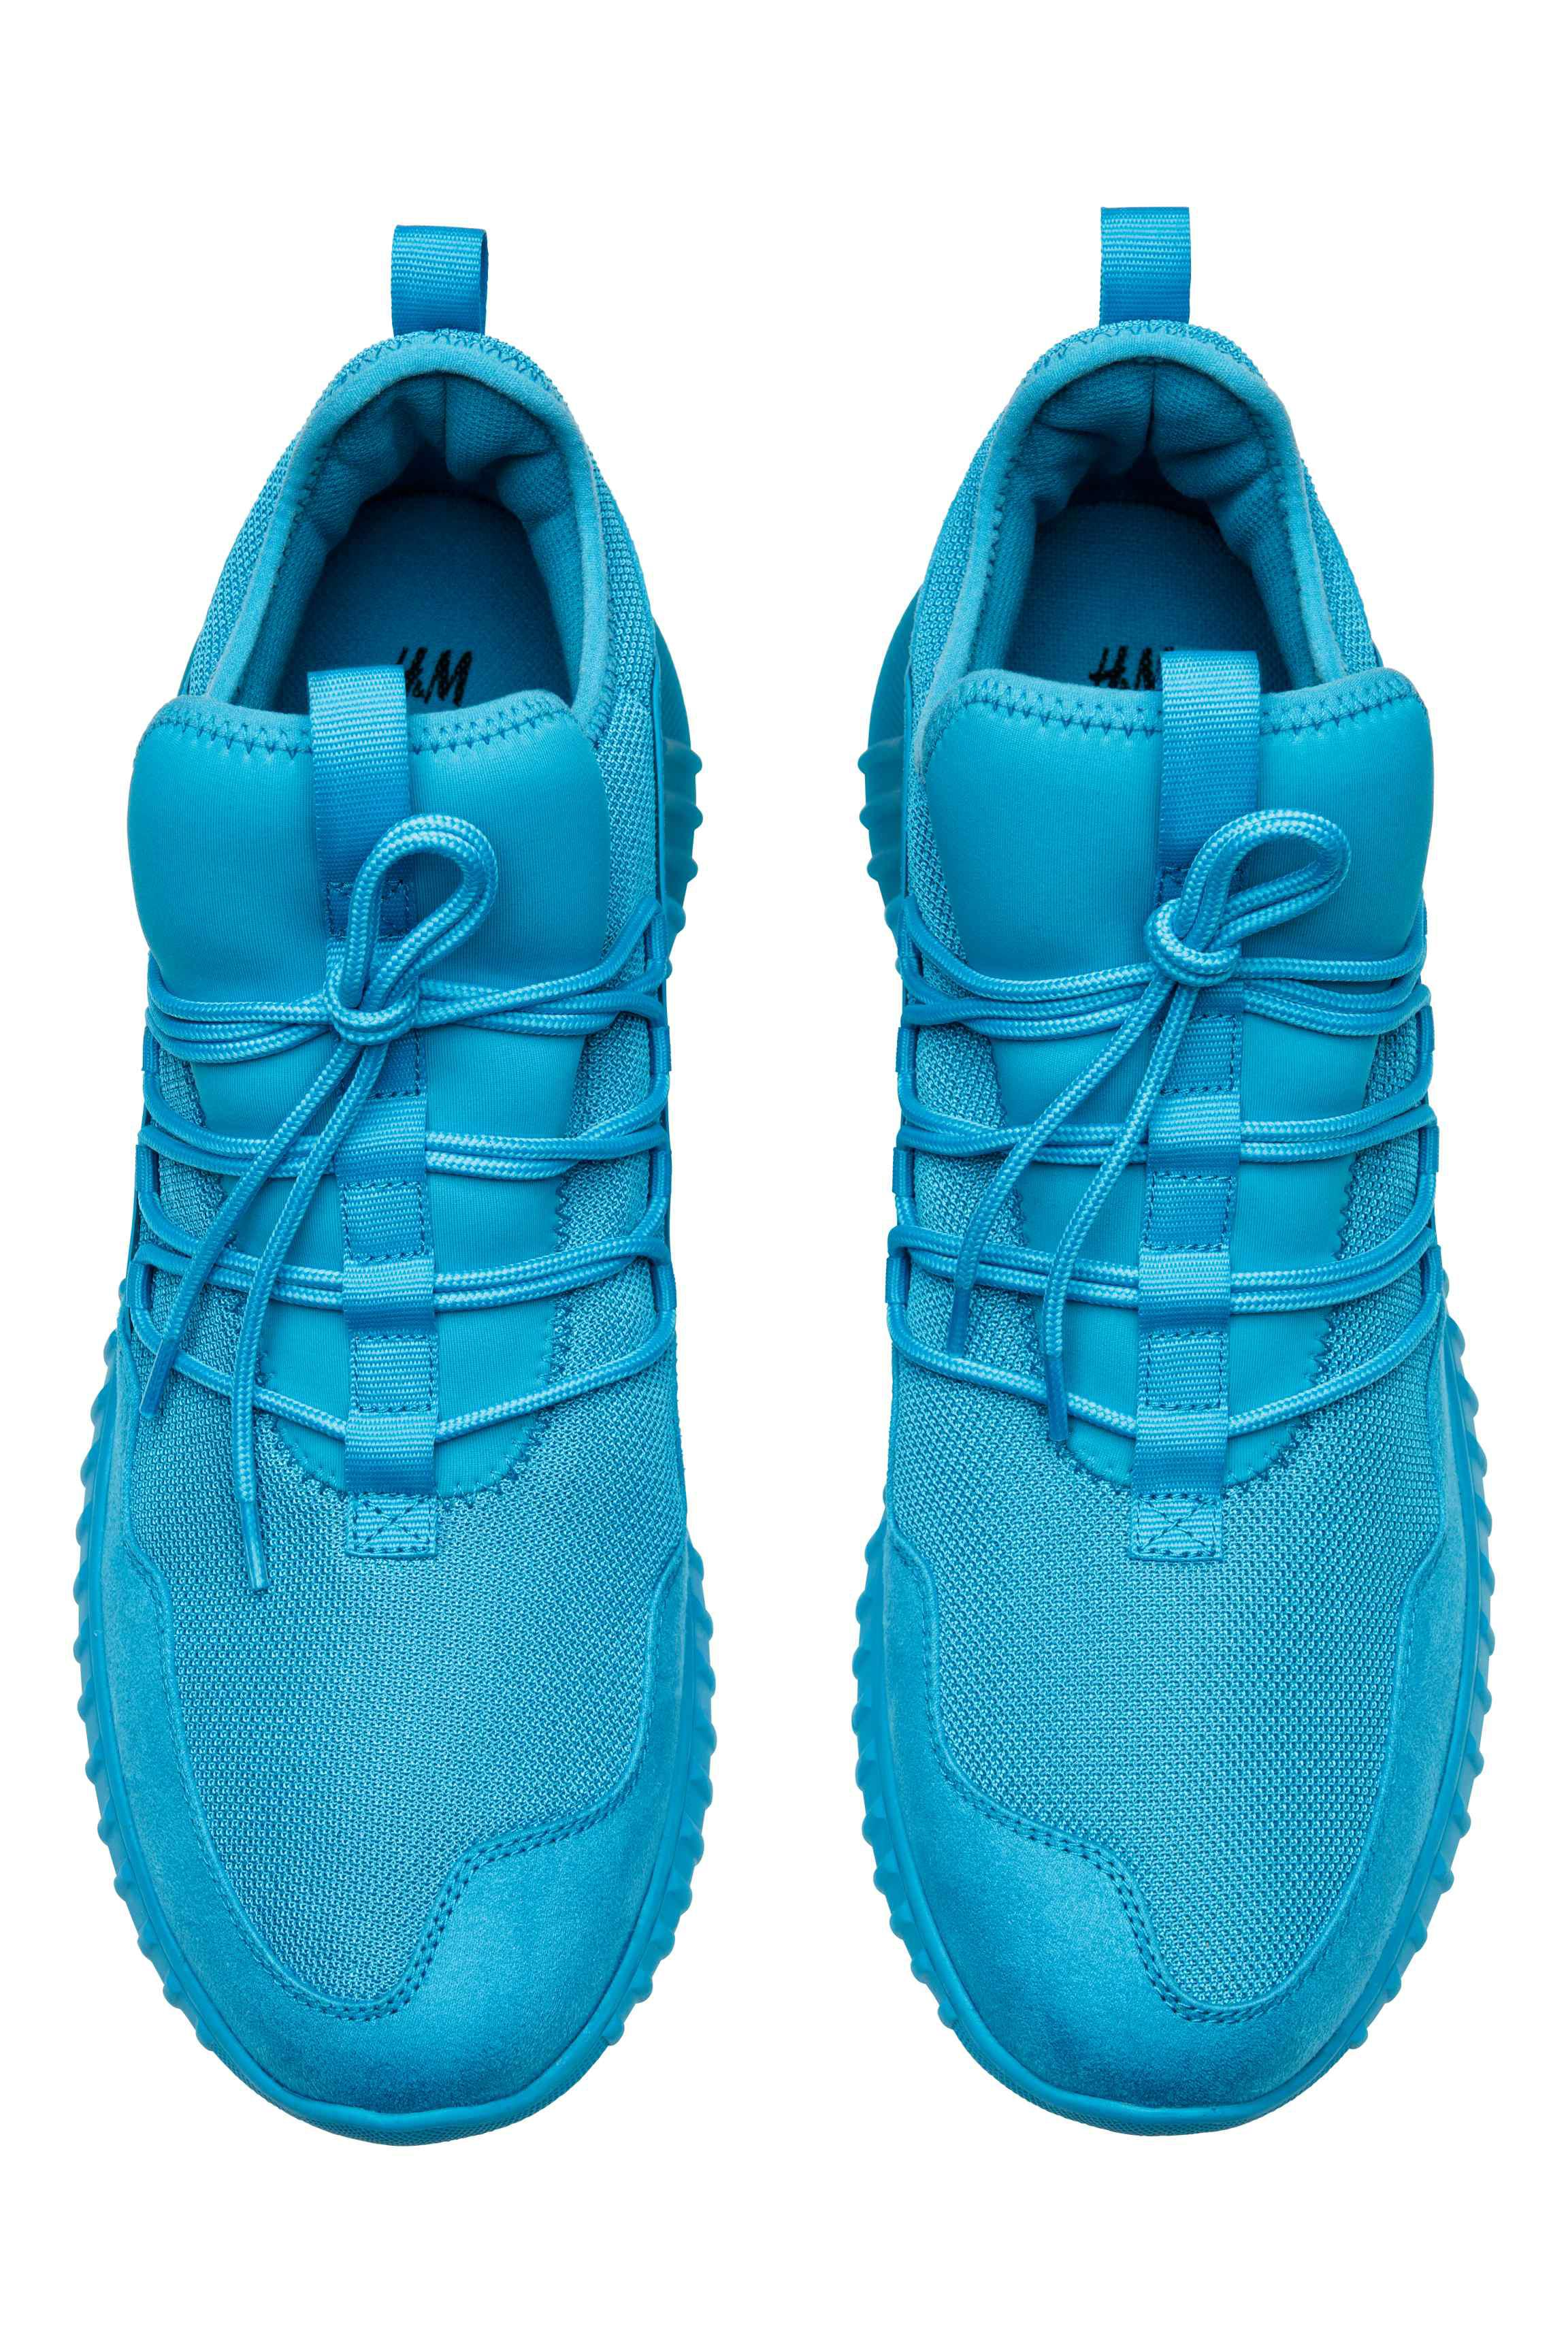 H&M Rubber Mesh Sneakers in Turquoise (Blue) for Men